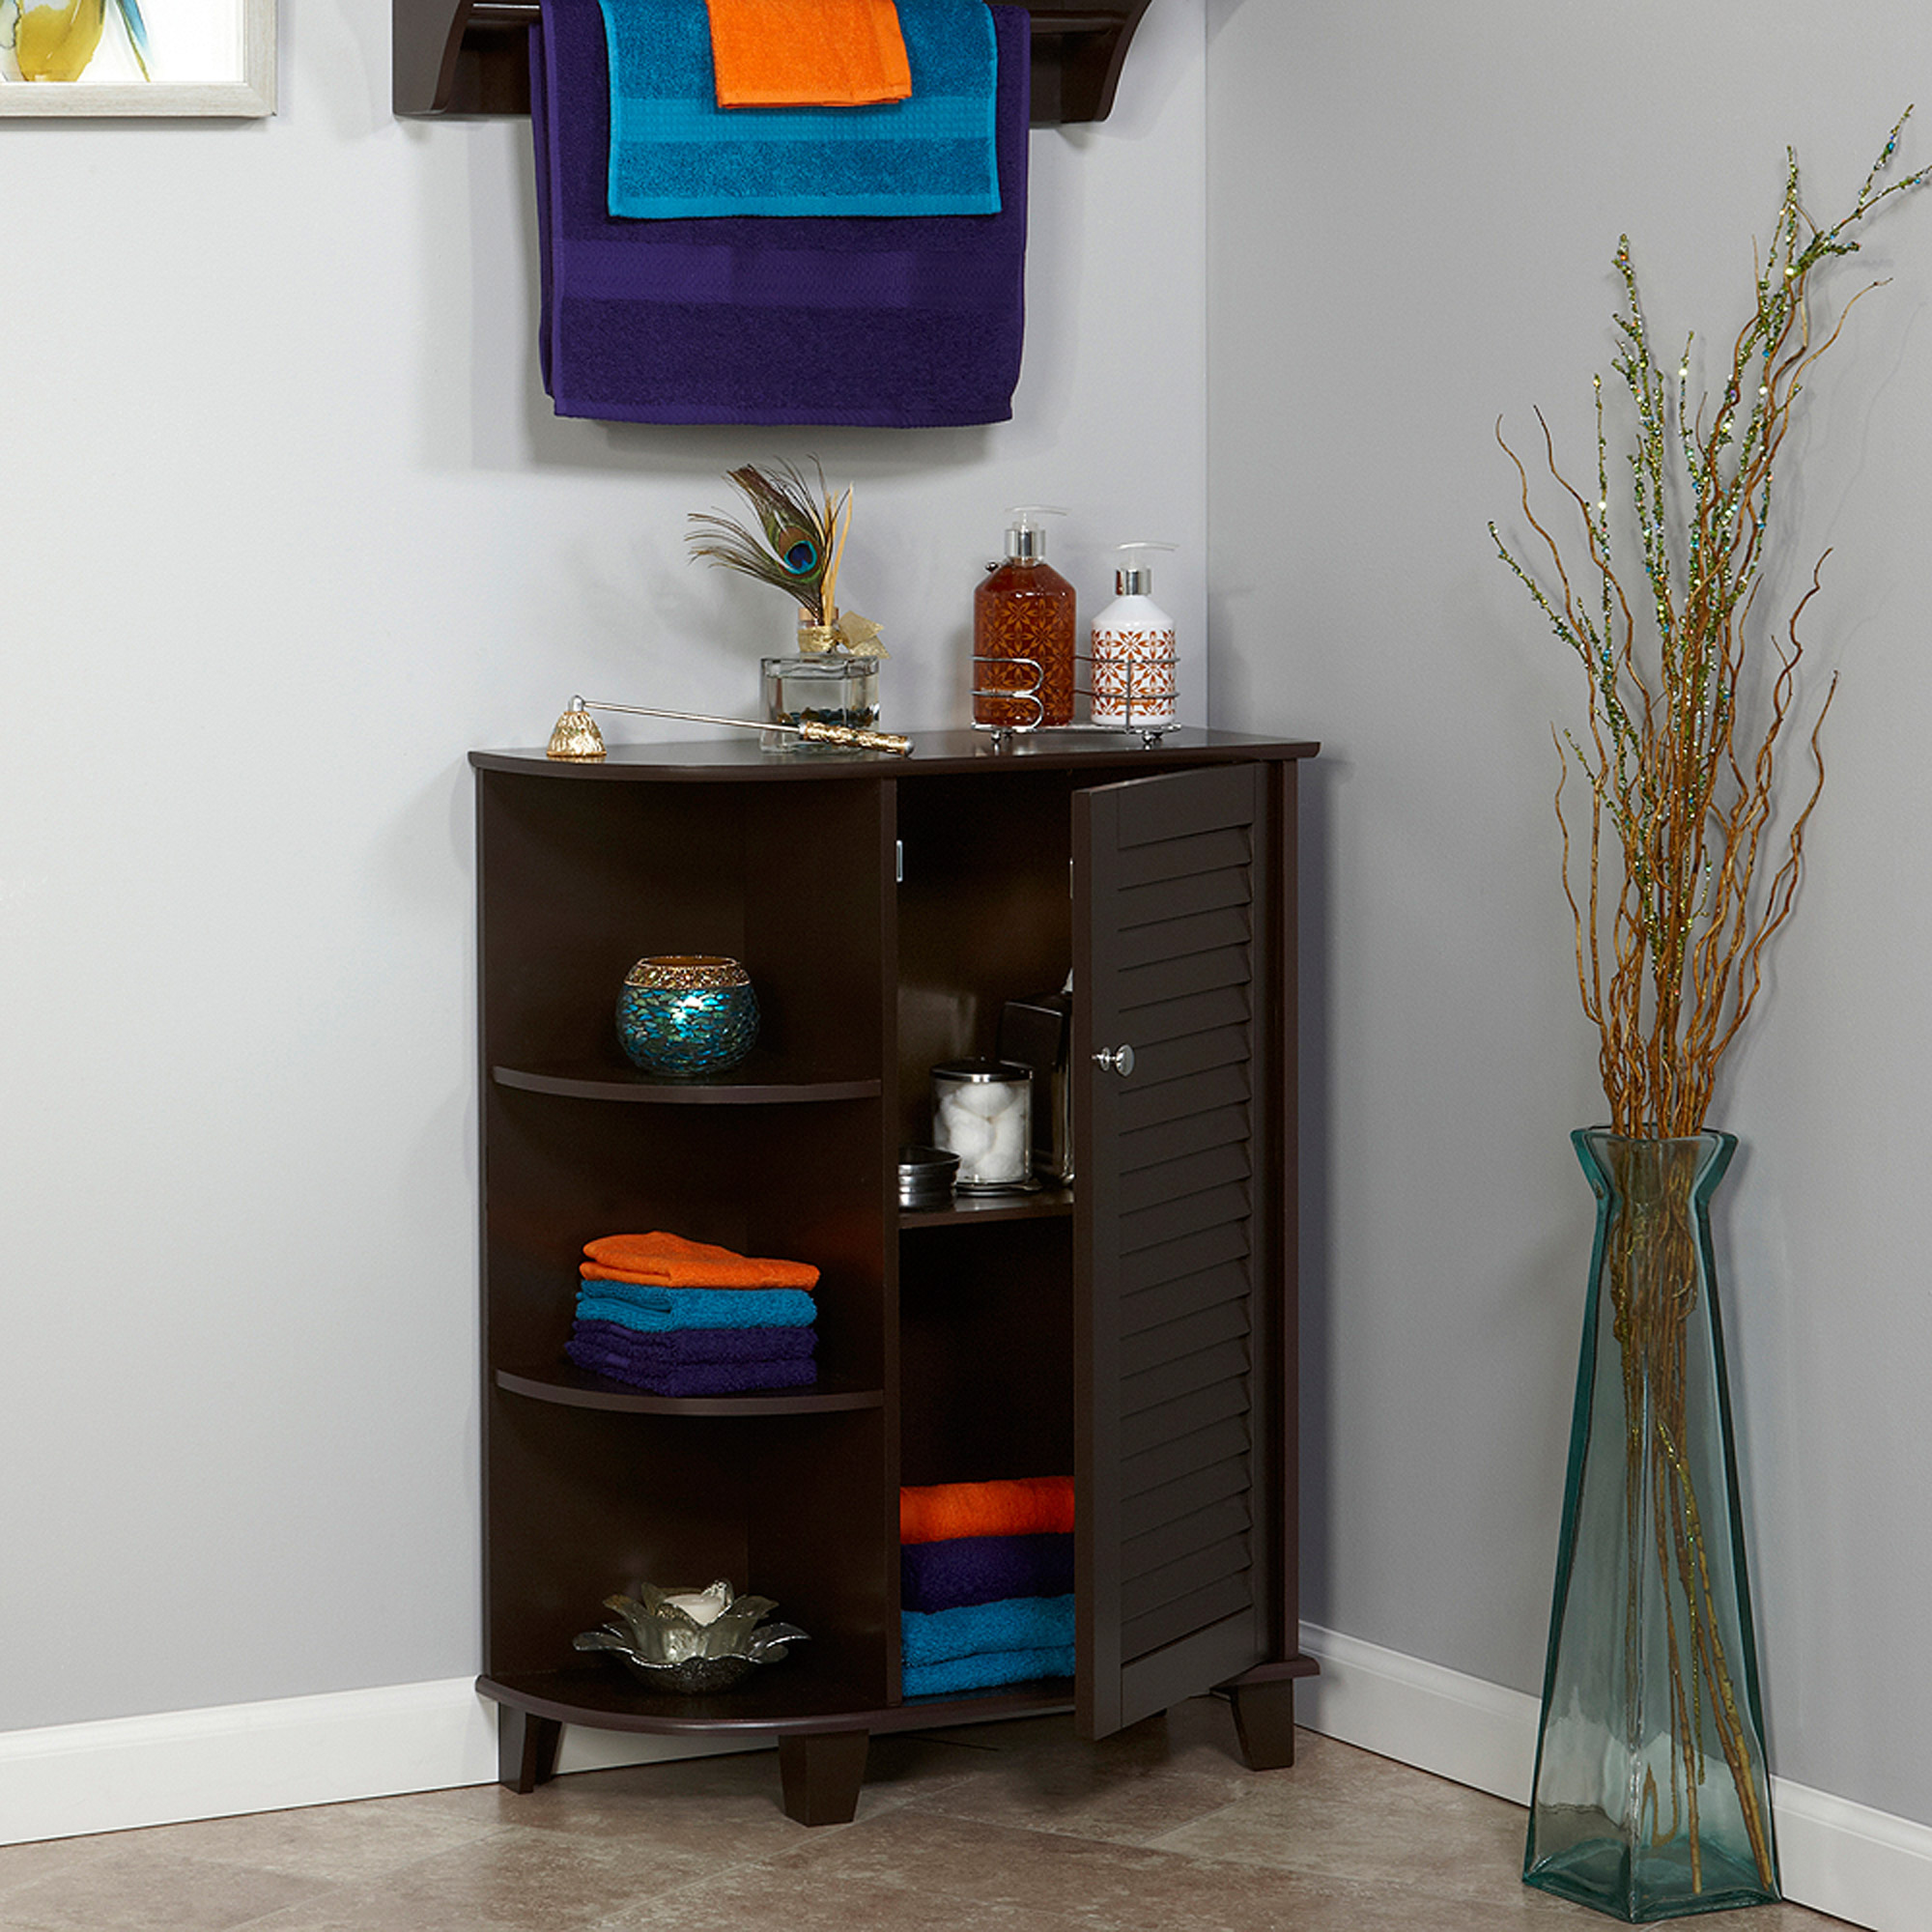 RiverRidge Ellsworth Floor Cabinet with Side Shelves, Espresso